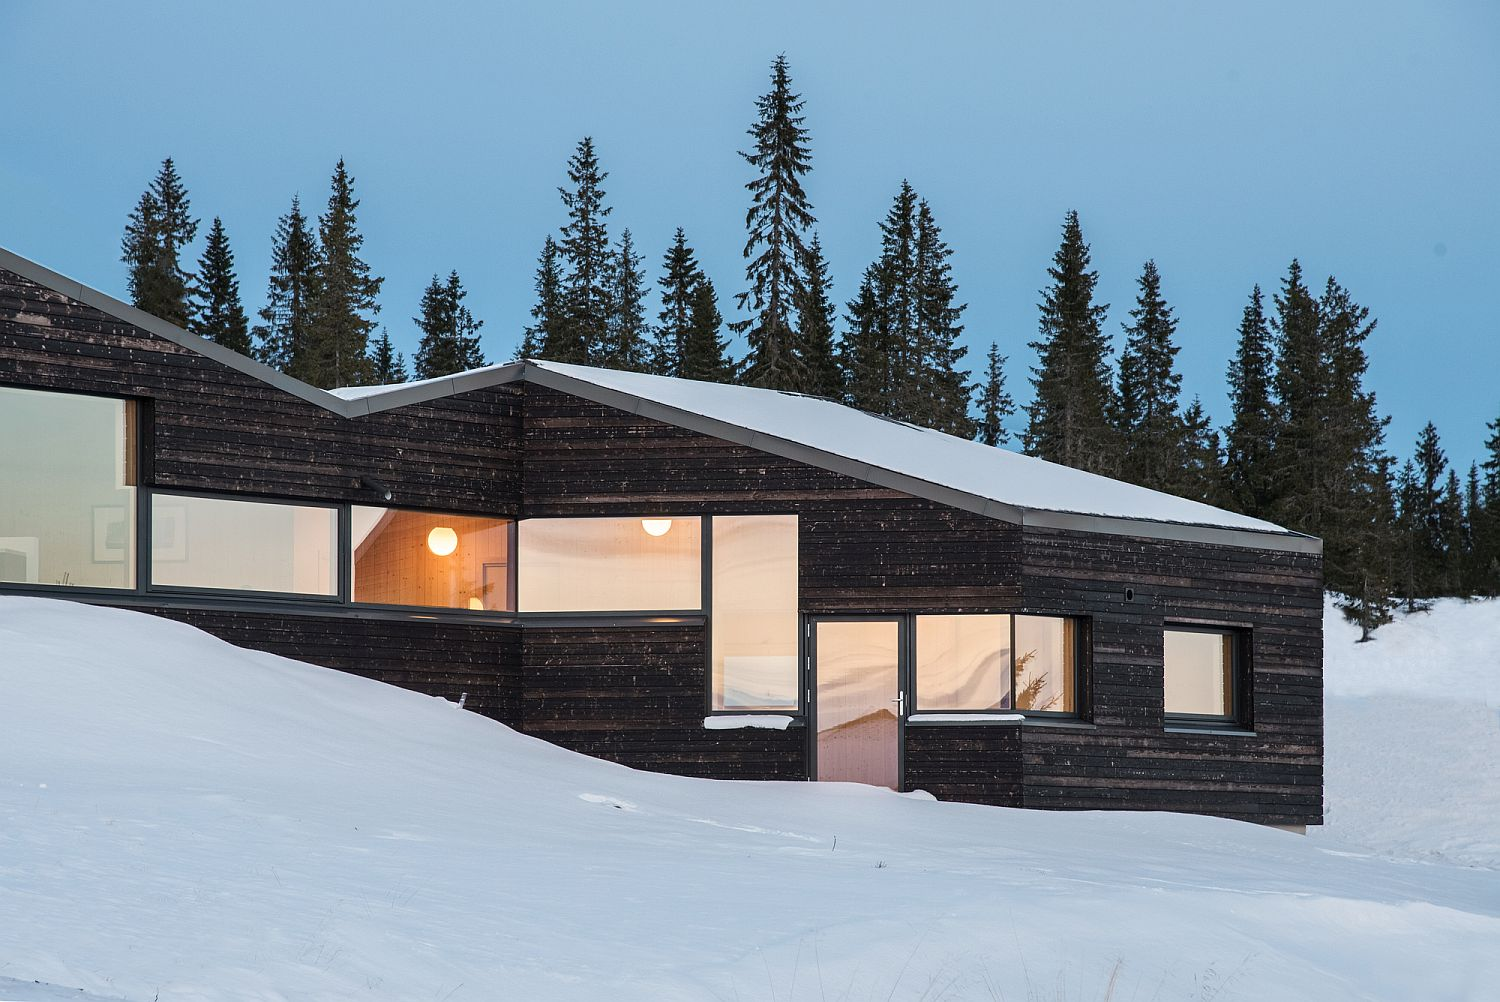 Gorgeous Norwegian cabin with carbonized wooden boards